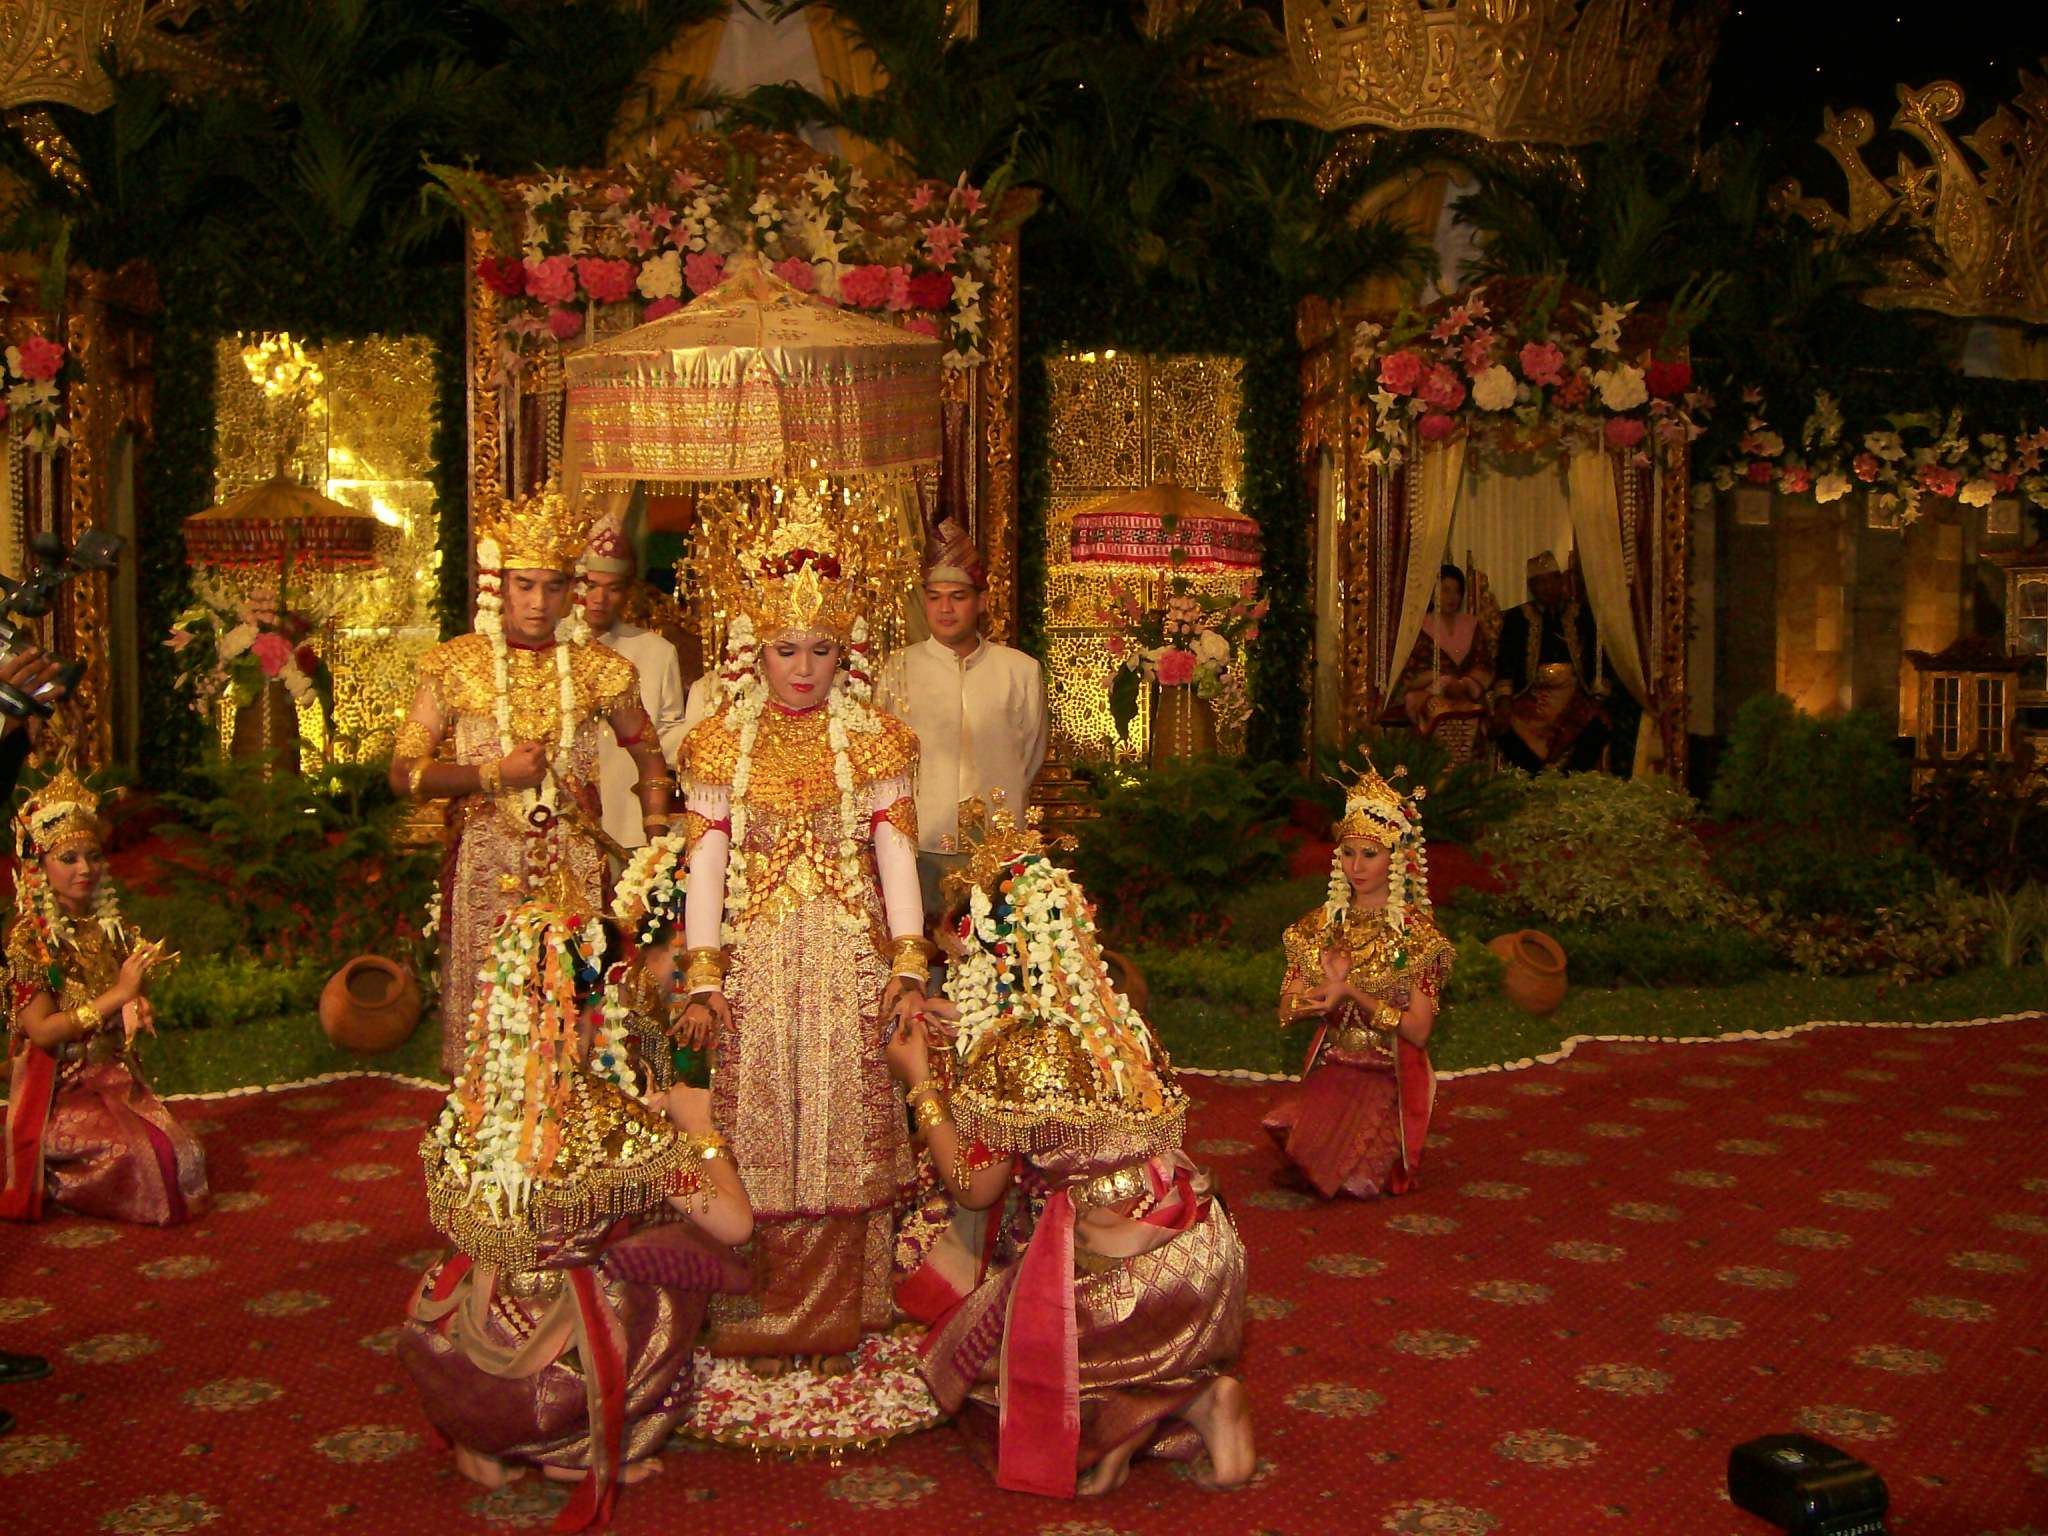 Palembang traditional wedding ceremony, where the bride